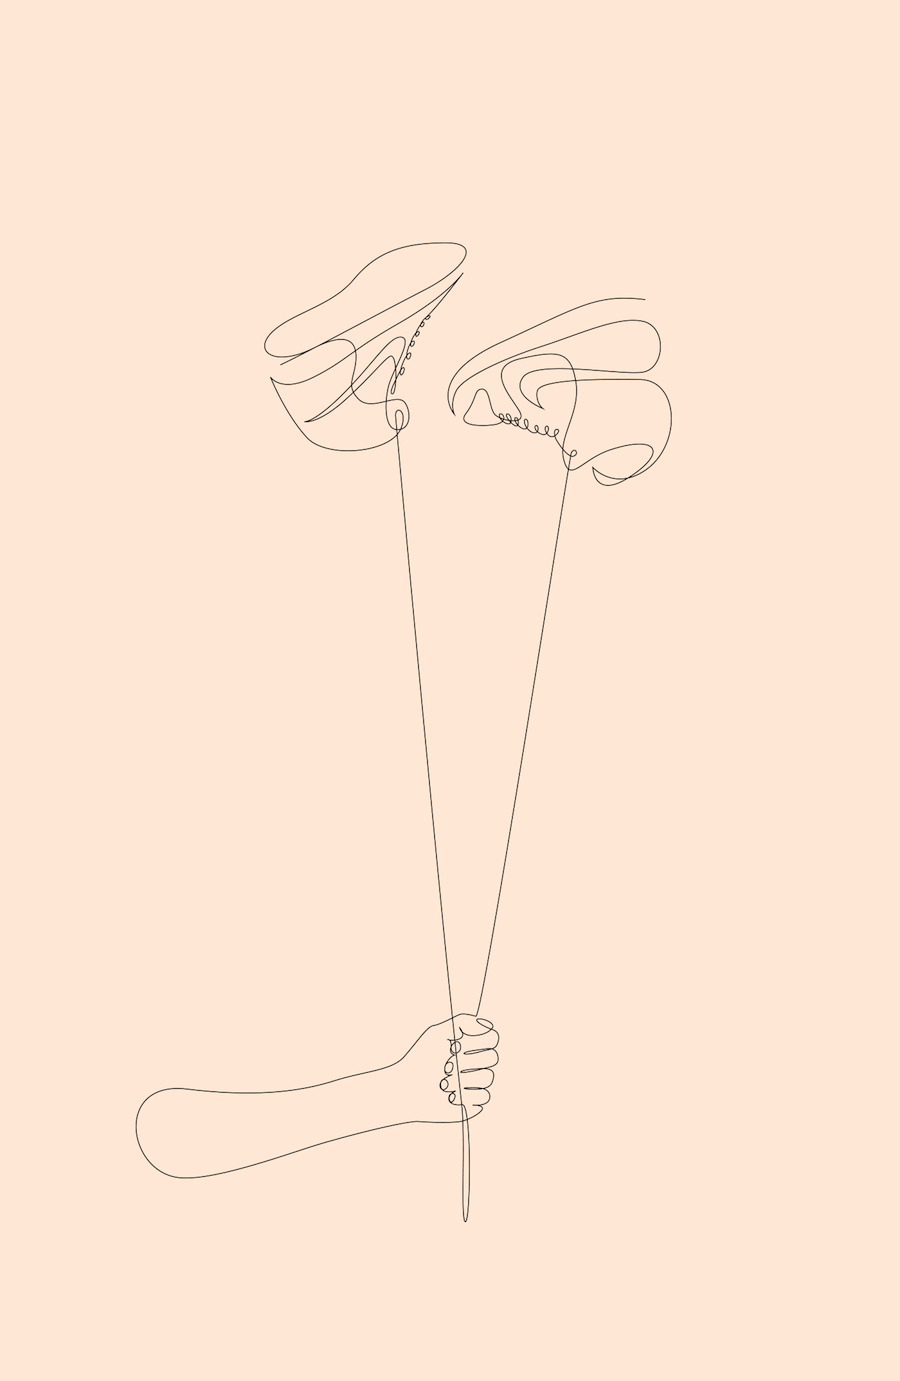 classic-sneakers-drawn-with-one-line6-900x1381